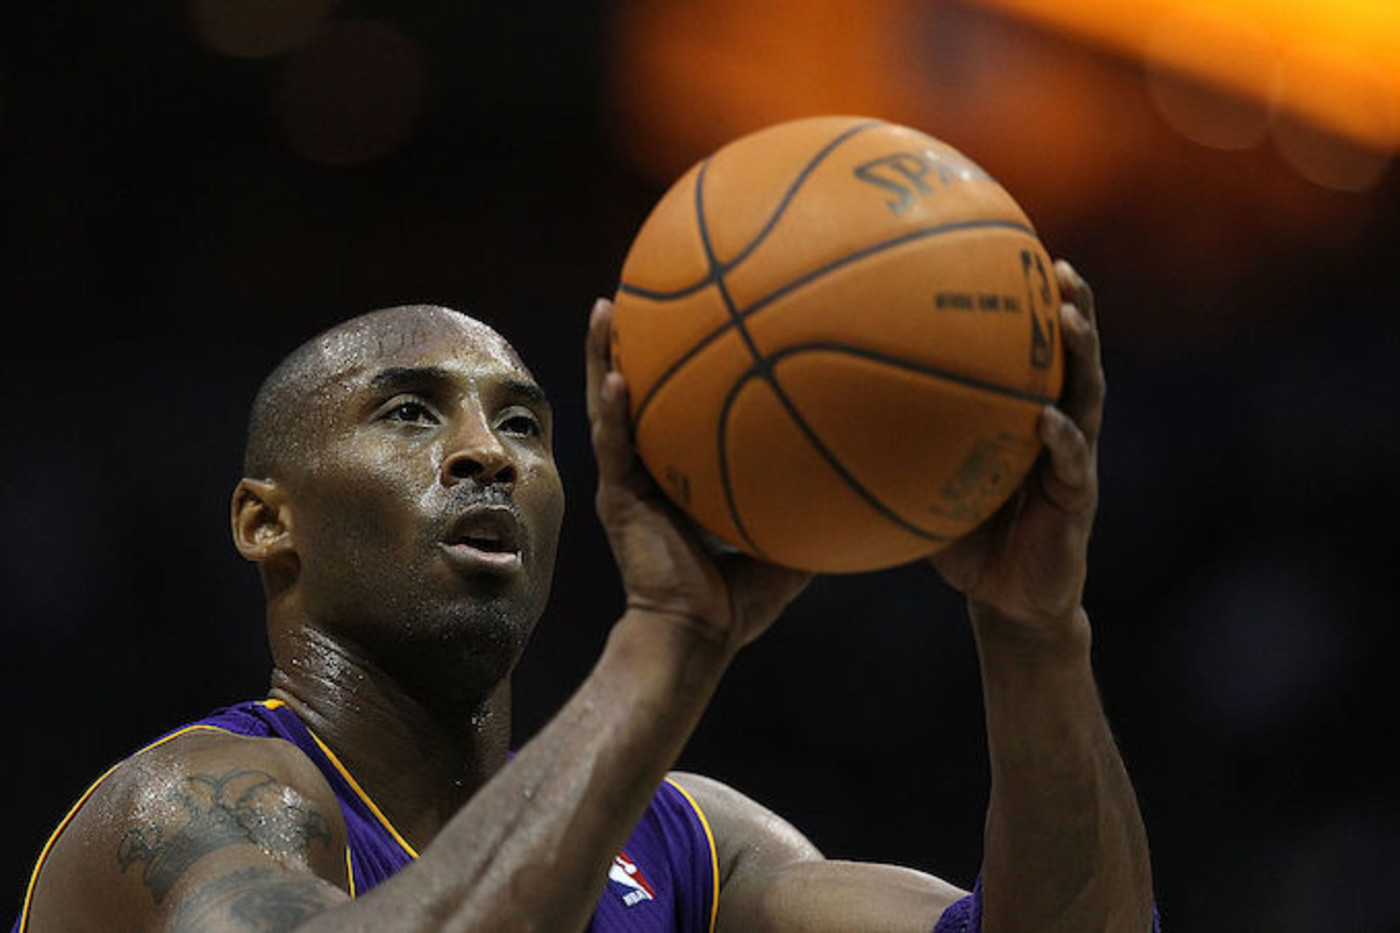 This is a picture of Kobe.